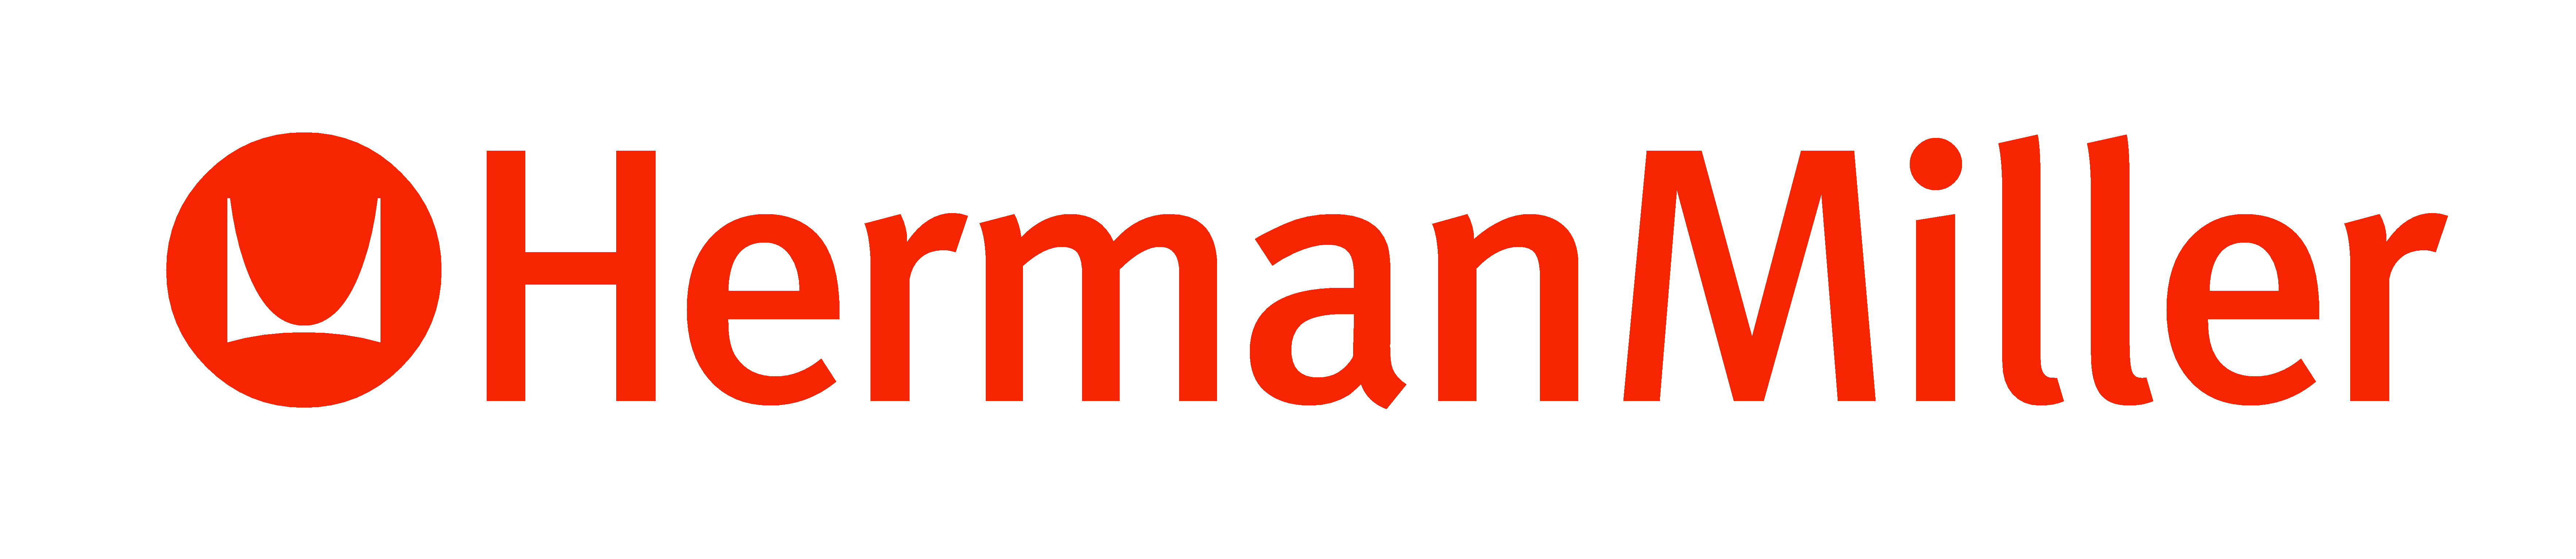 Herman Miller, Inc. (MLHR) CEO Brian Walker on Q4 2018 Results - Earnings Call Transcript